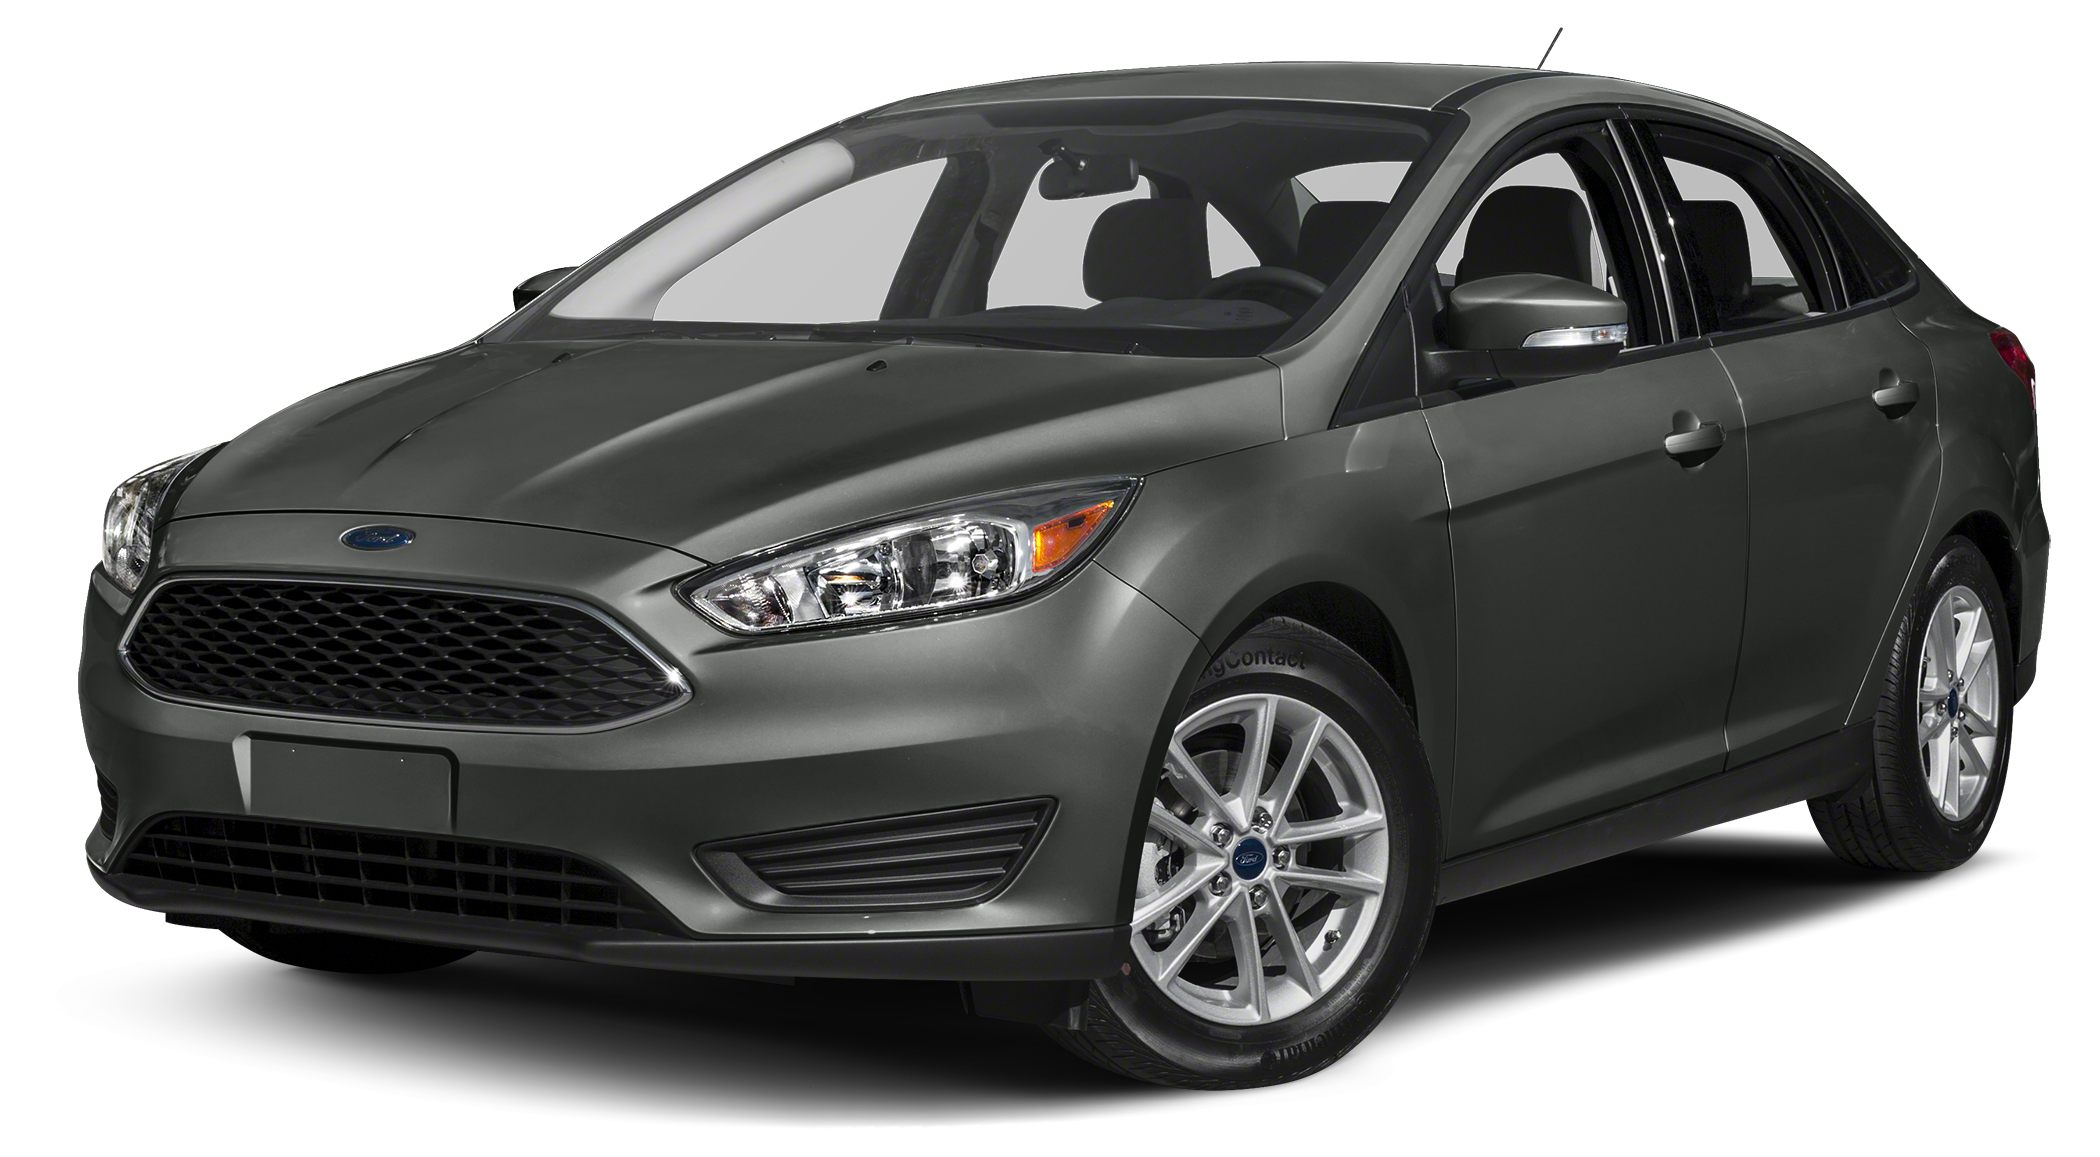 2018 Ford Focus SE 2018 Ford Focus SE 4030 HighwayCity MPG Price includes 2500 - Retail Custo